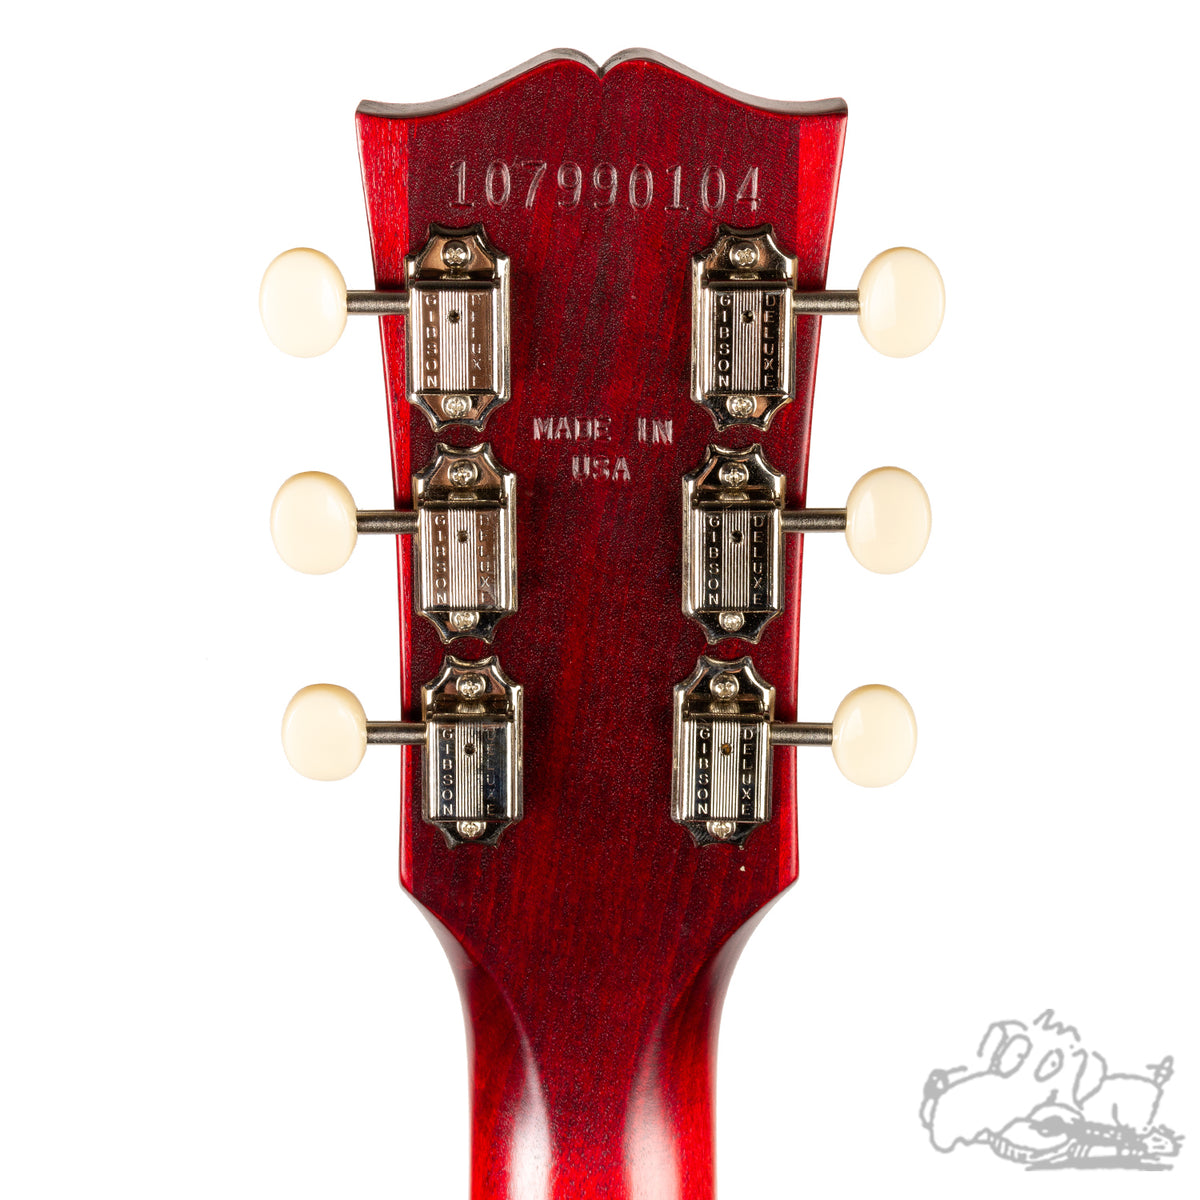 2019 Gibson Les Paul Special Tribute Double Cut